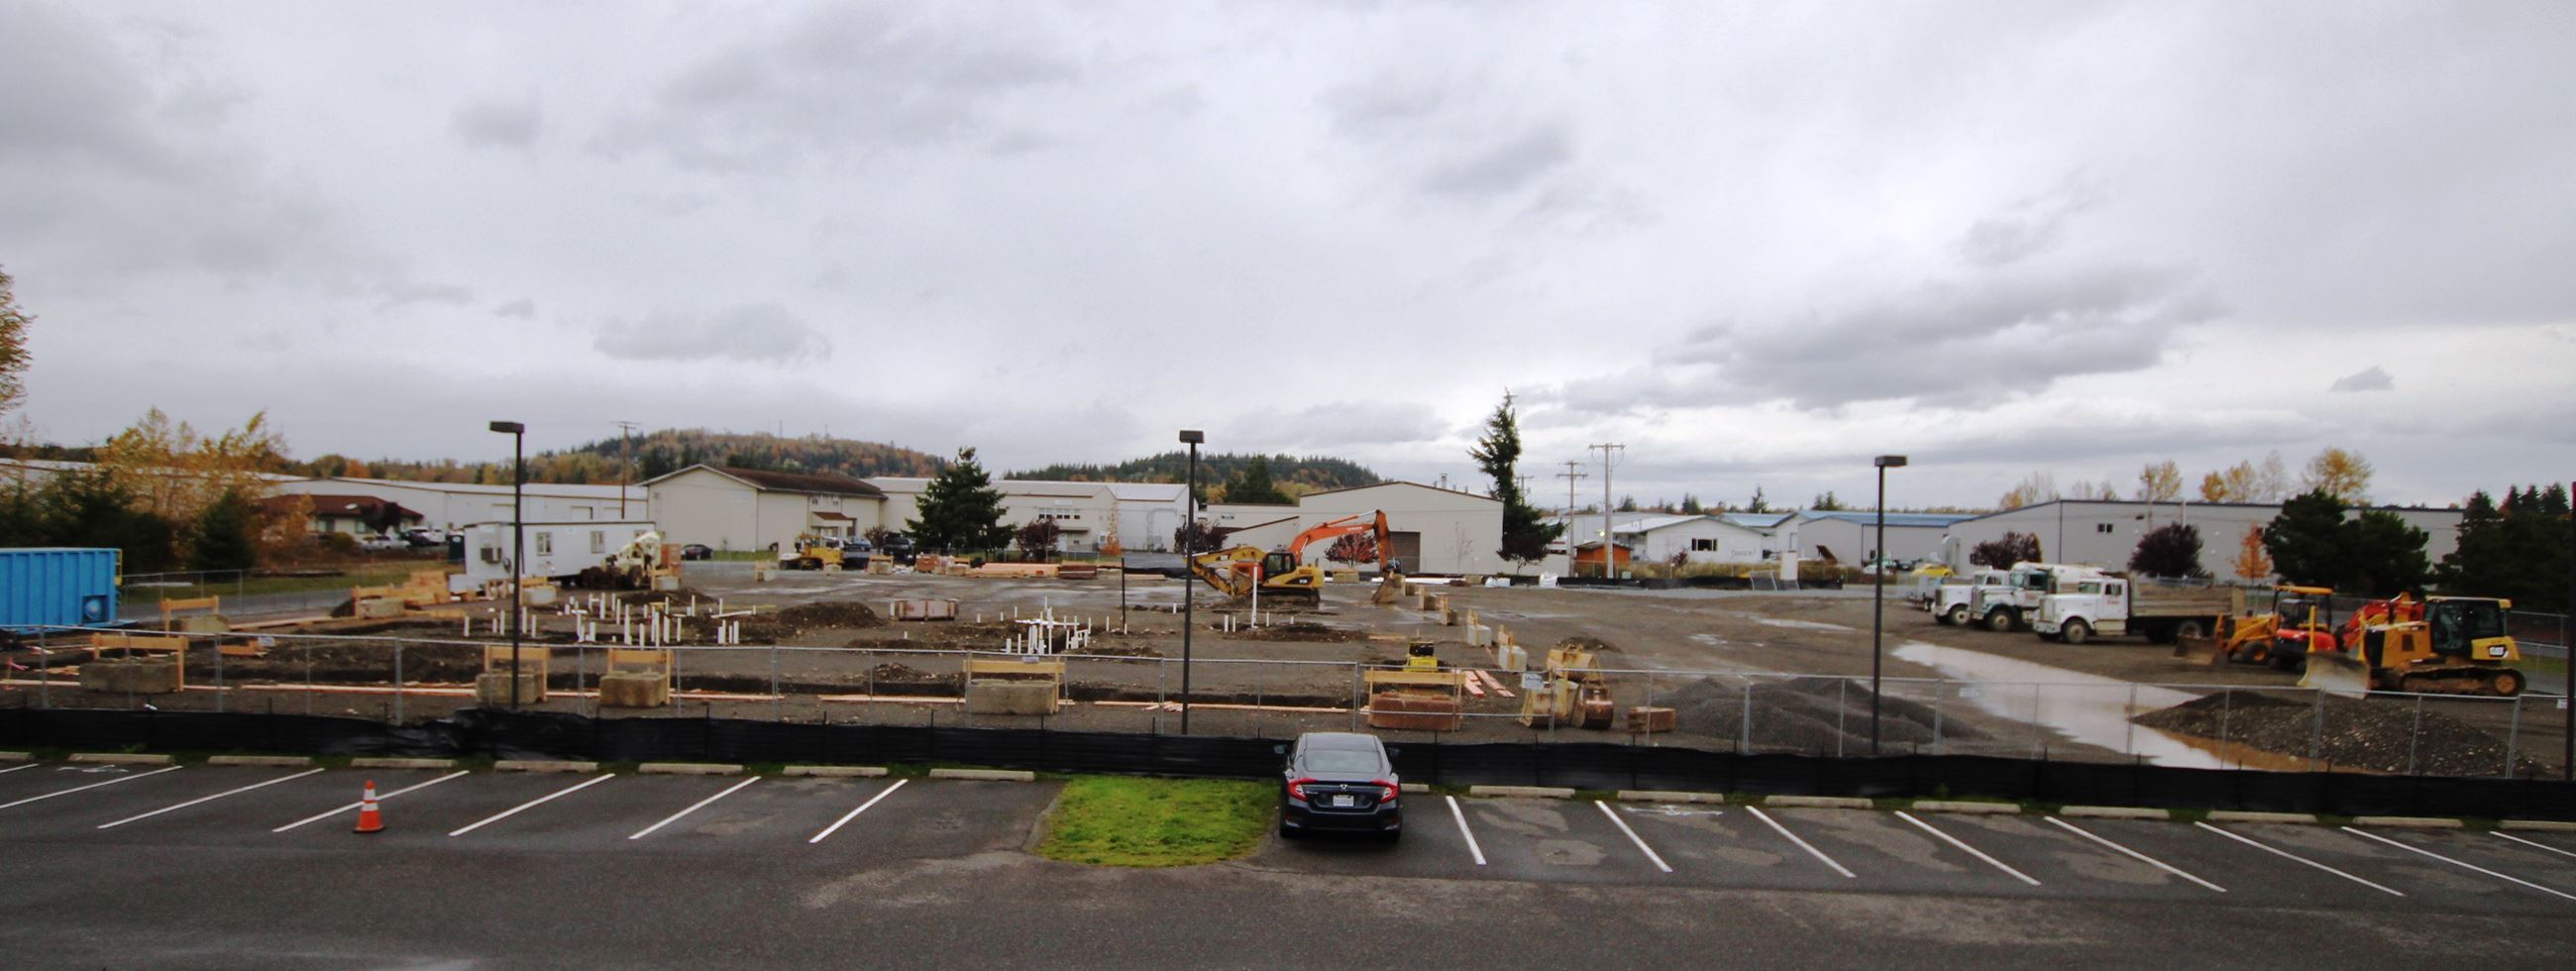 Whatcom_Crisis_Stabilization_Center_Camera_1_2019-10-17_200032